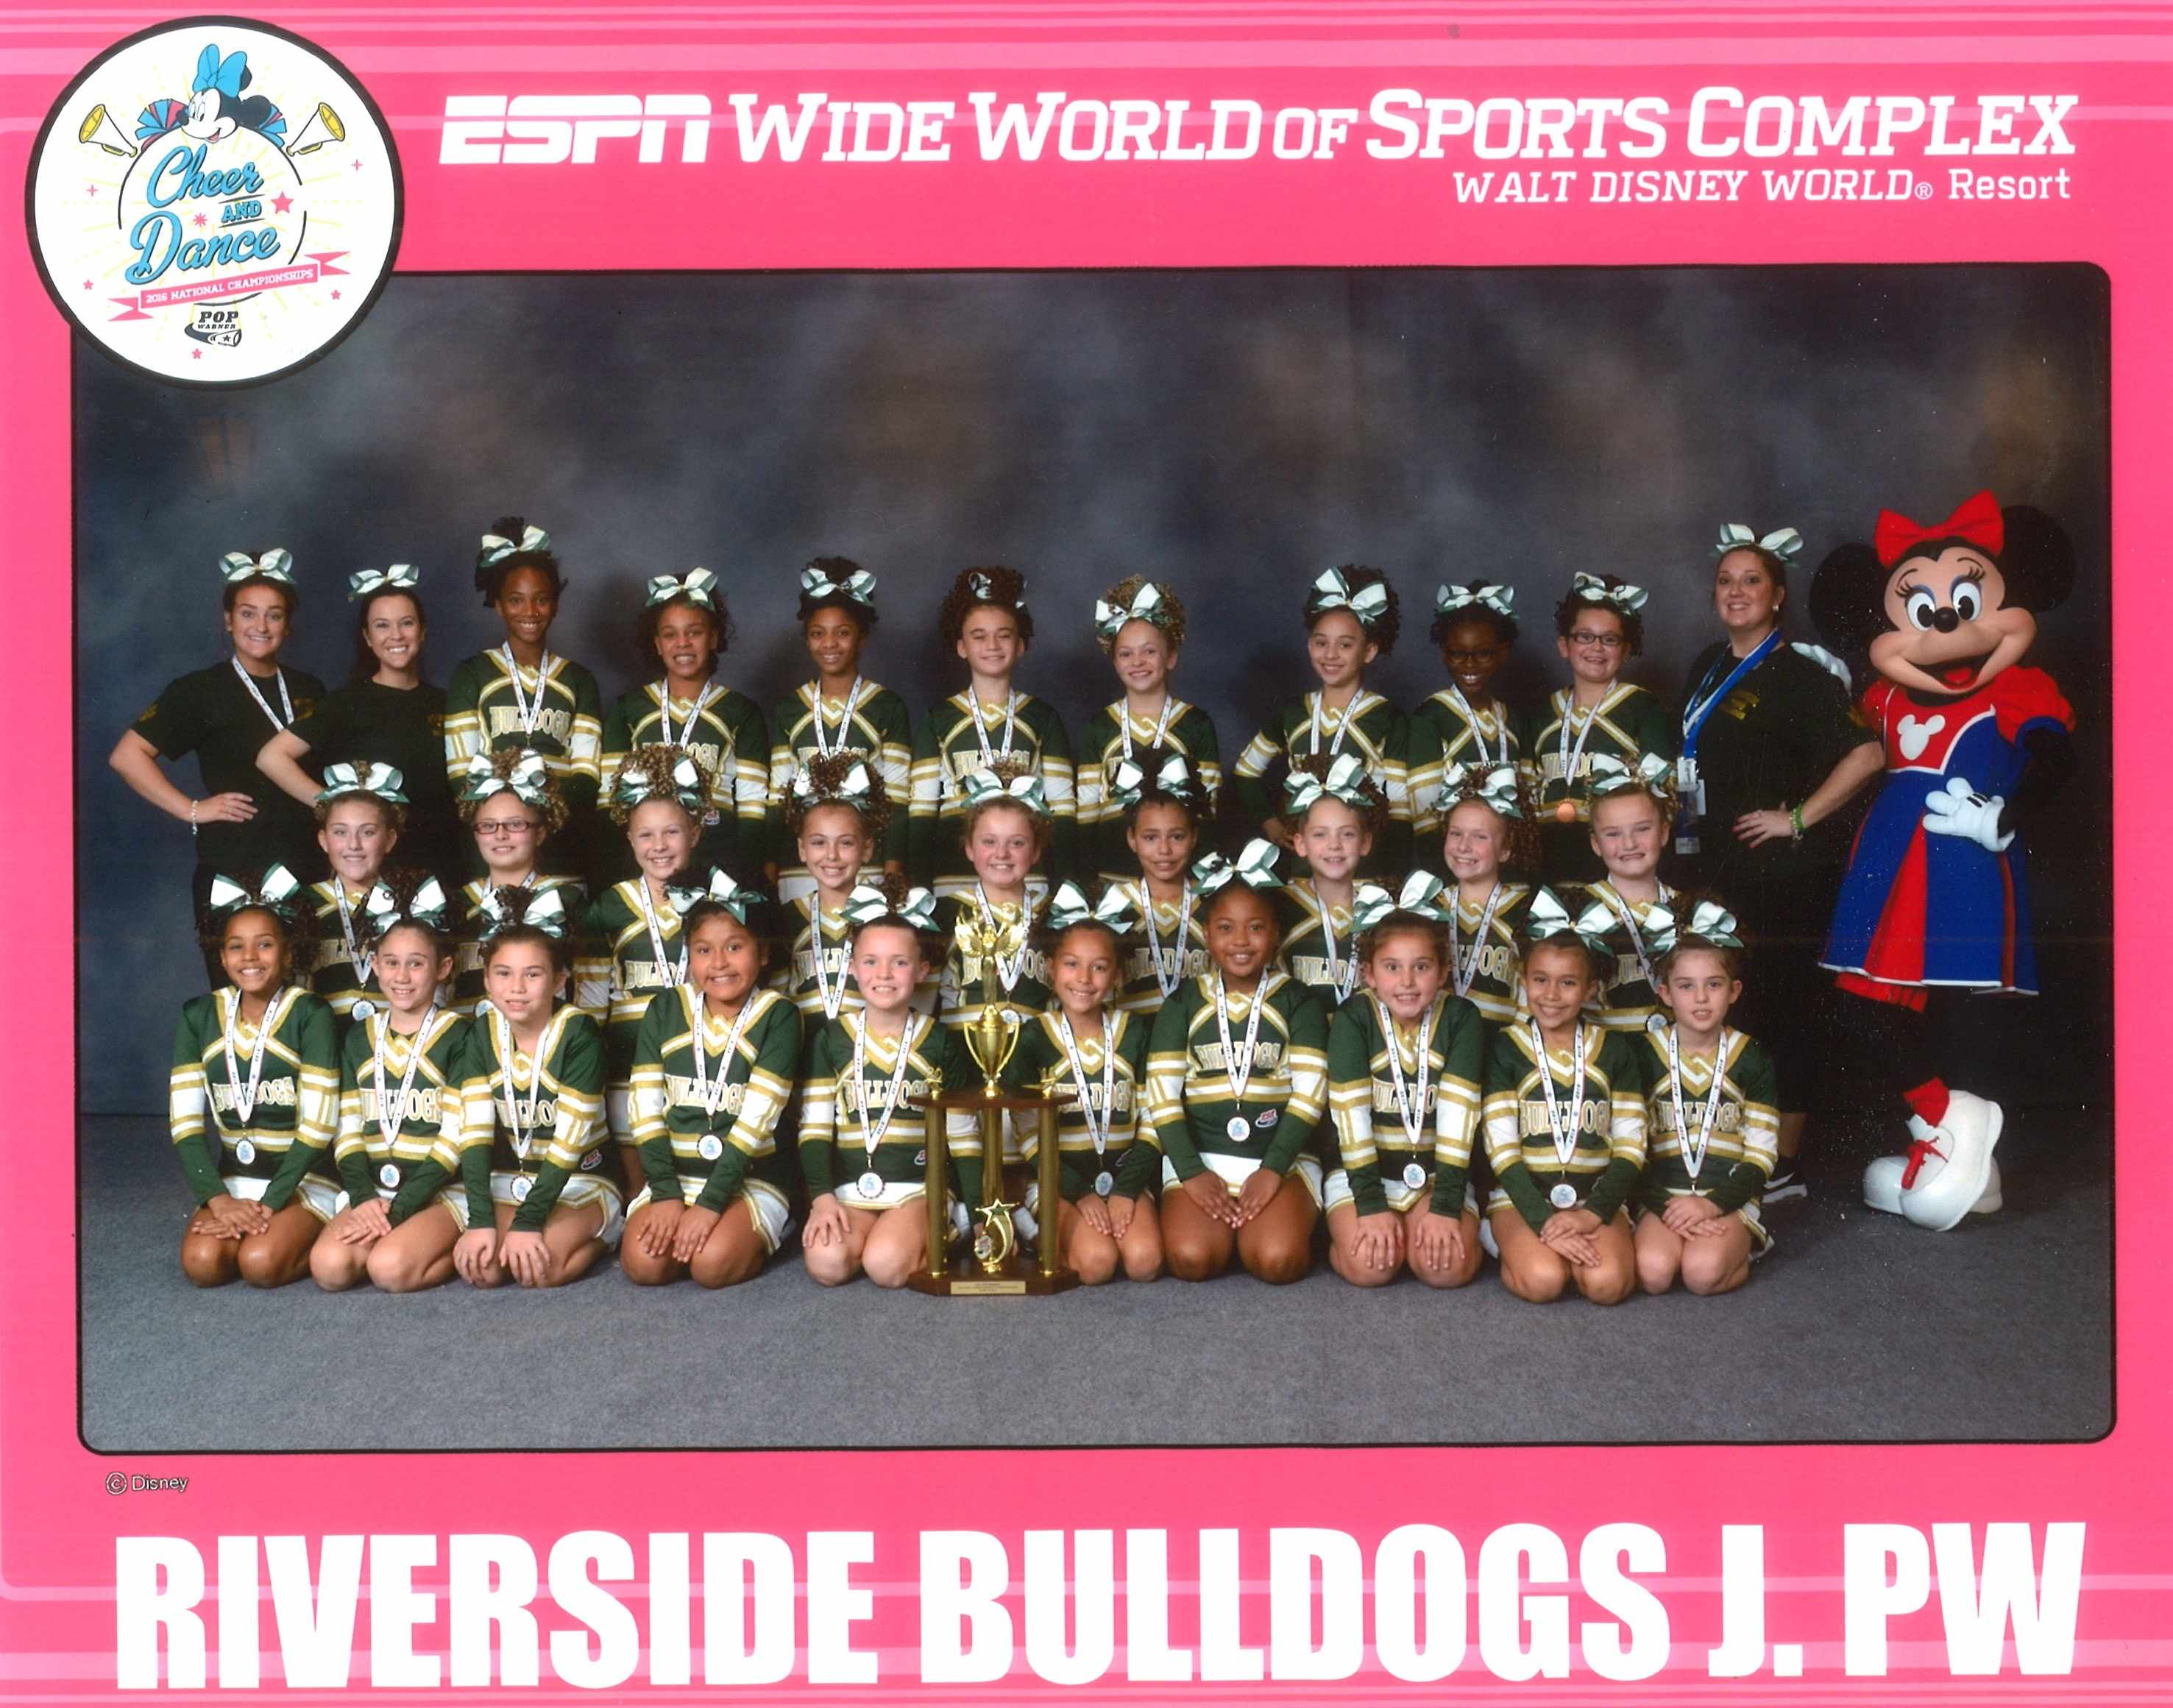 Riverside Bulldogs JPW National Photo.jpg